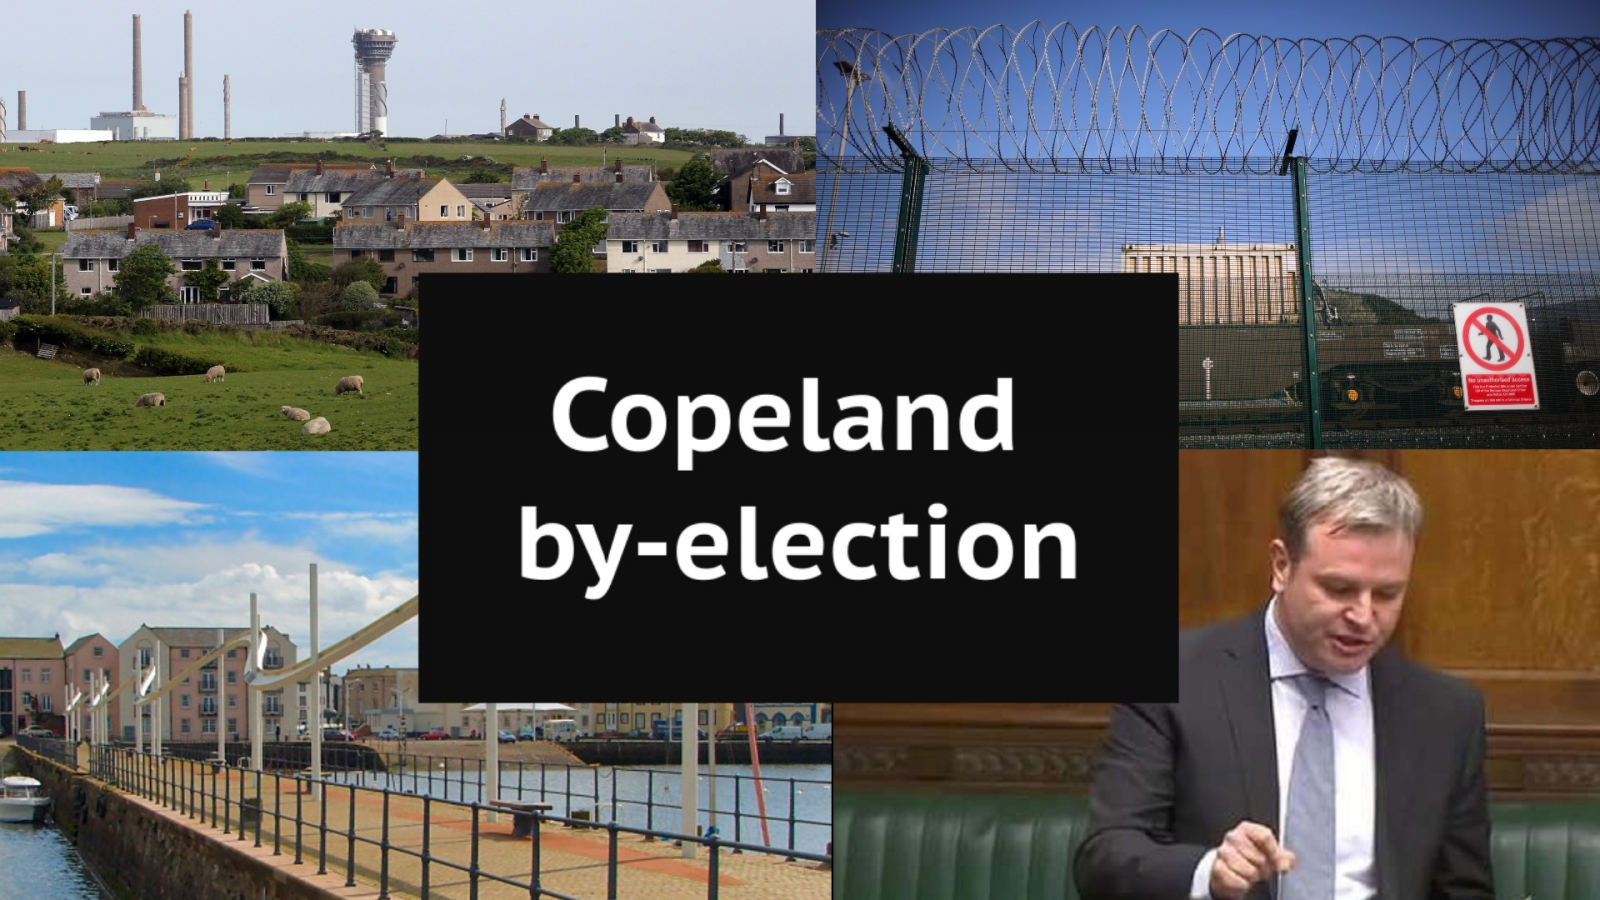 Copeland by-election